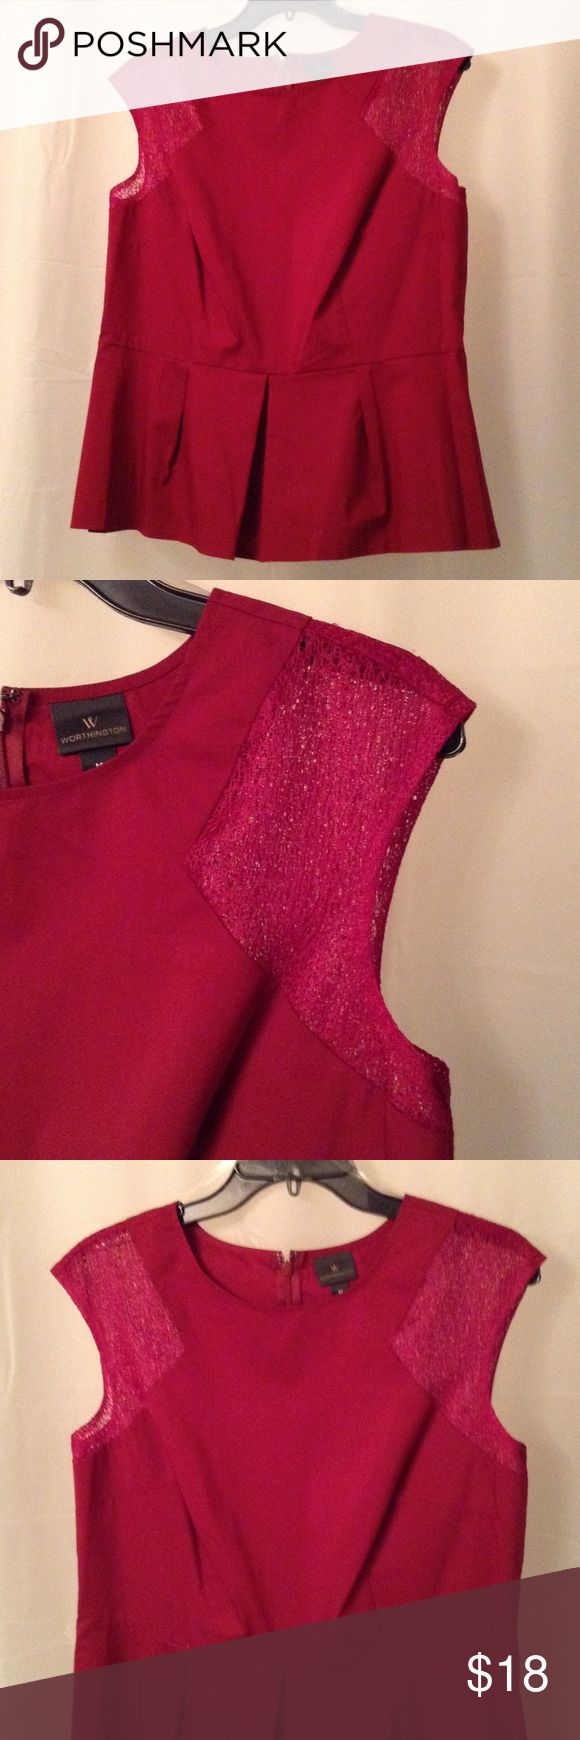 Red peplum top with lace inset cap sleeves size M Red maroon peplum top /NWOT size M fits like  10/12  super cute with lace inset shoulders and peplum sillhouette NWOT Worthington Tops